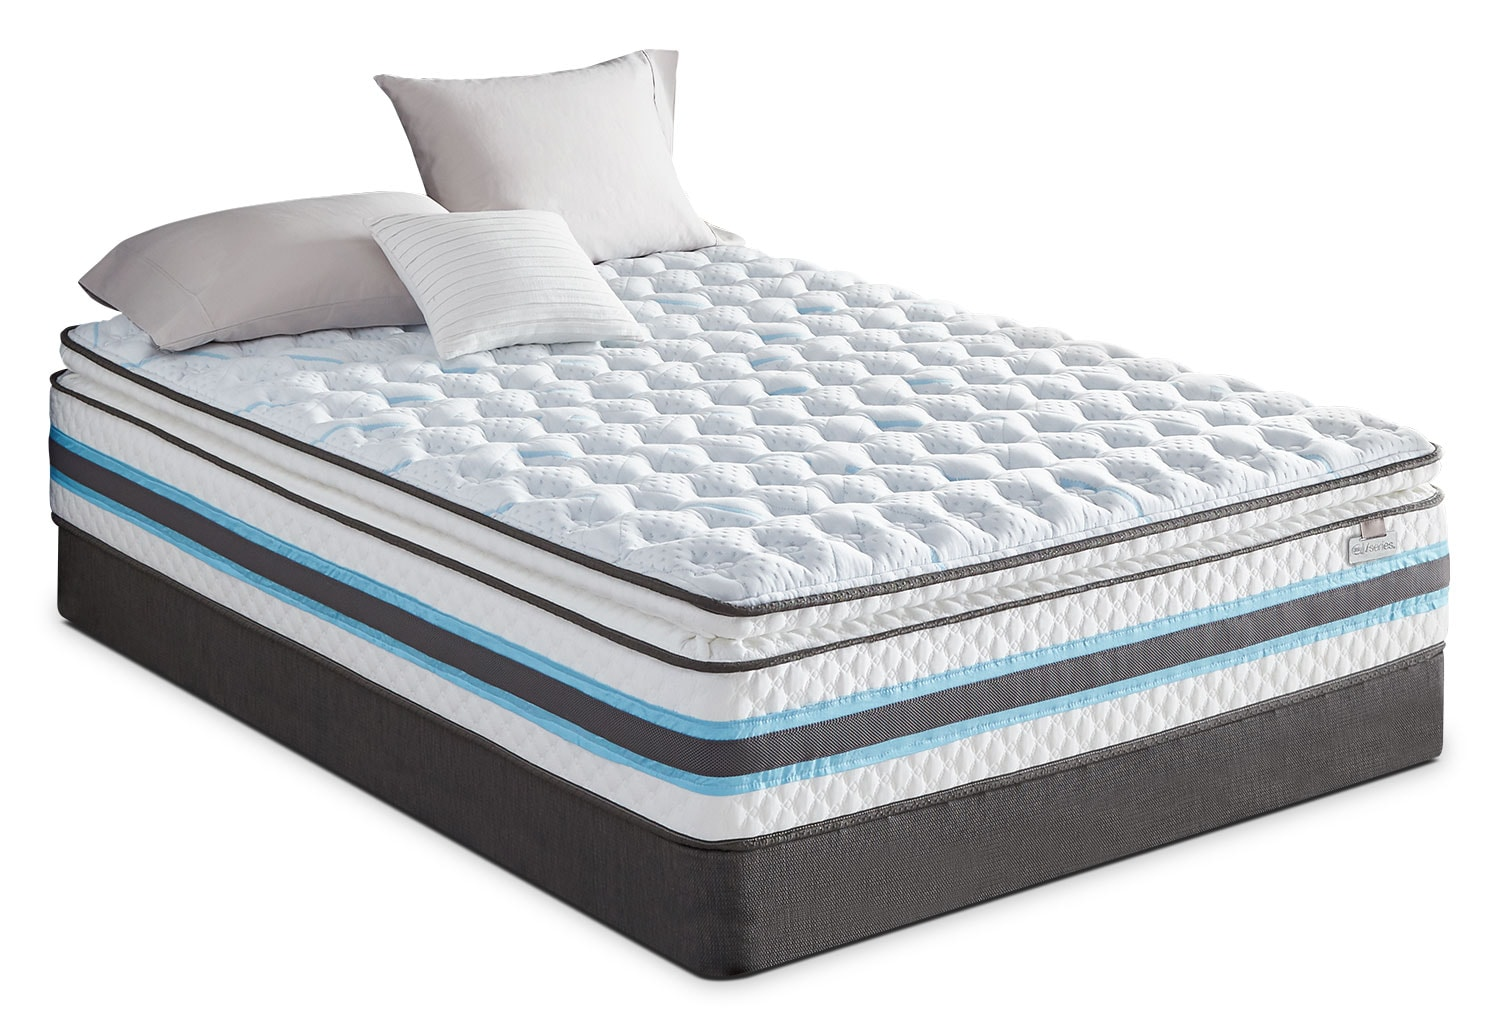 Mattresses and Bedding - Serta iSeries® Breathtaking Pillow-Top Firm Low-Profile Split Queen Mattress Set